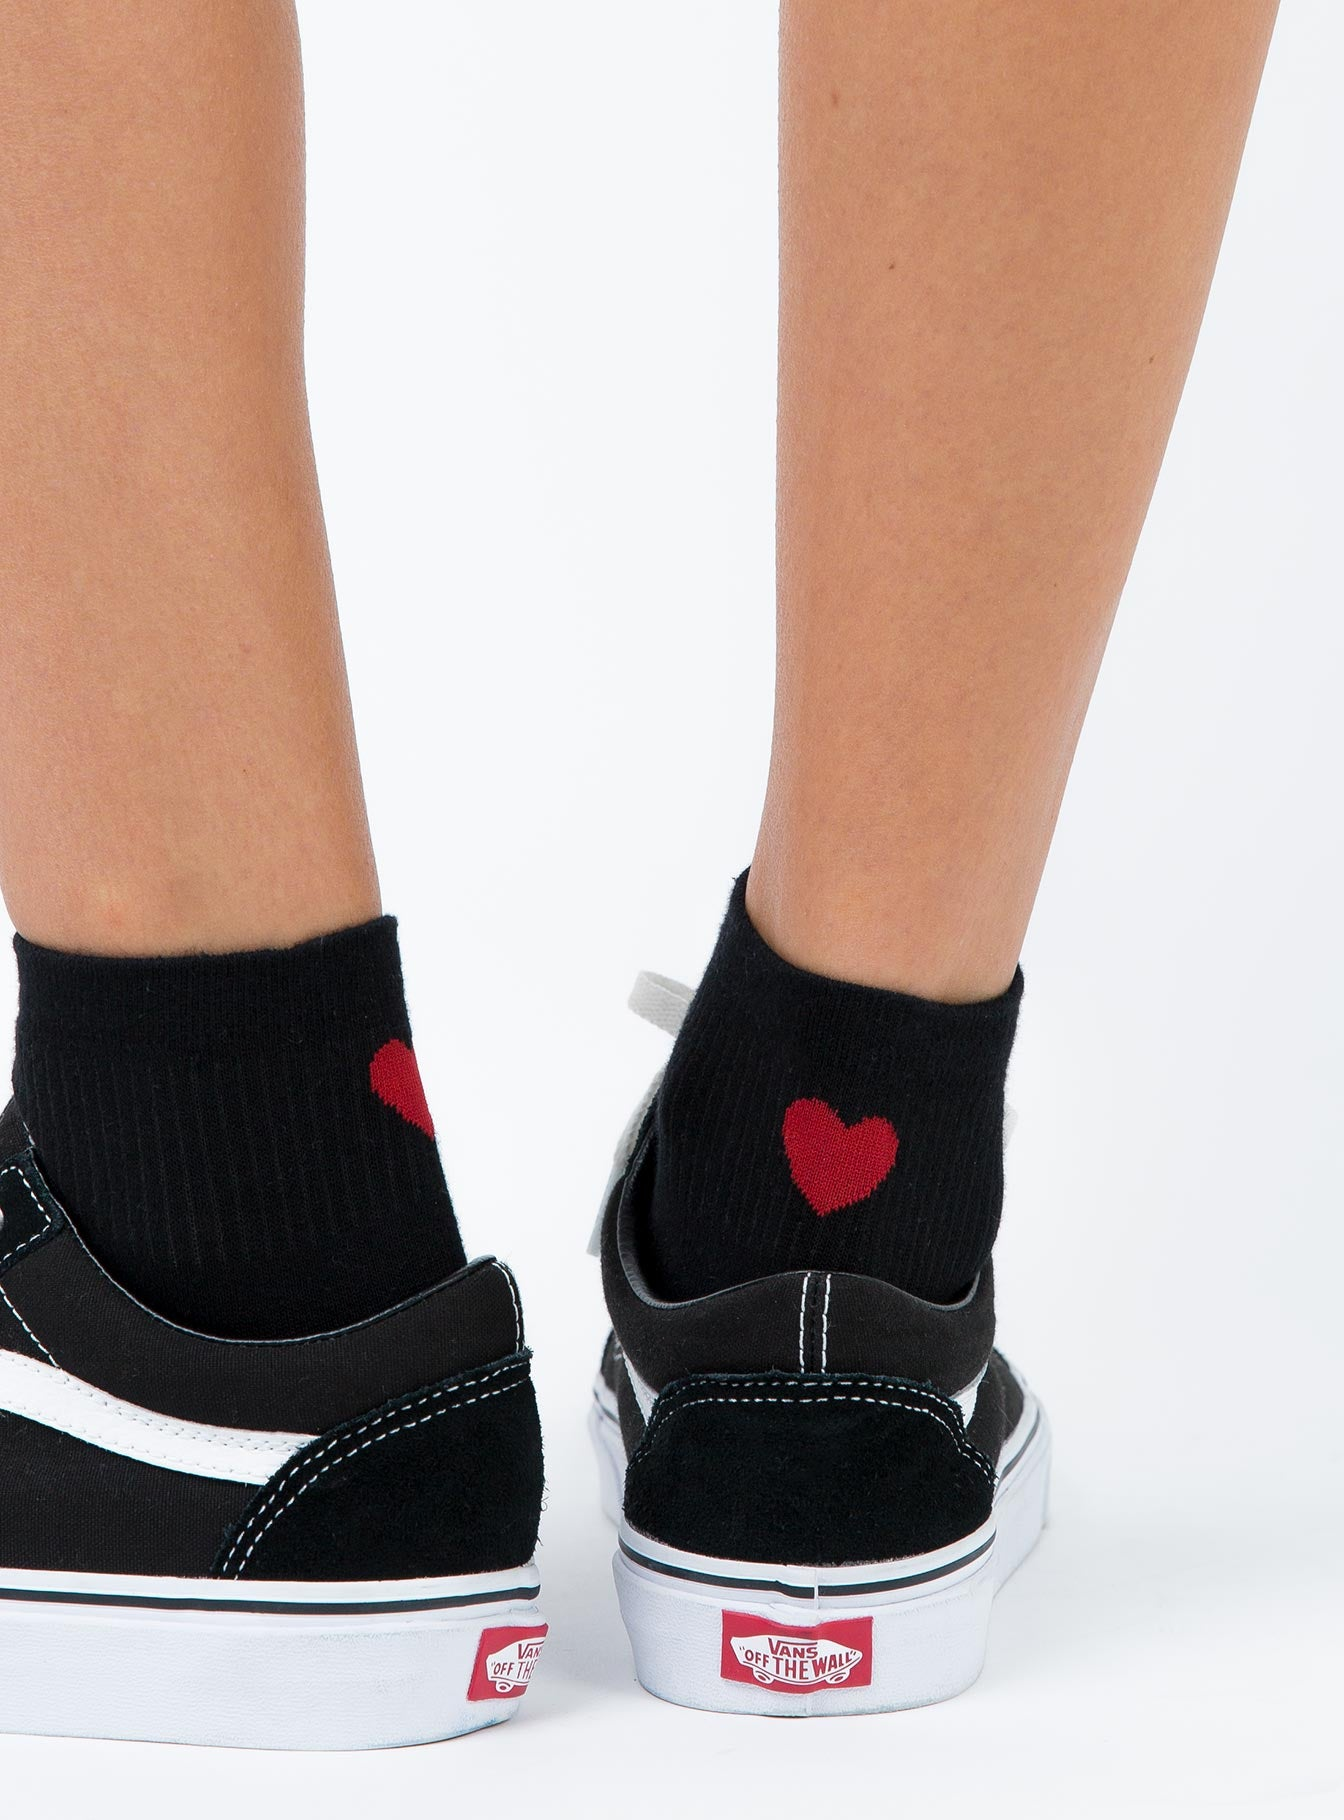 Ayla Heart Socks Black